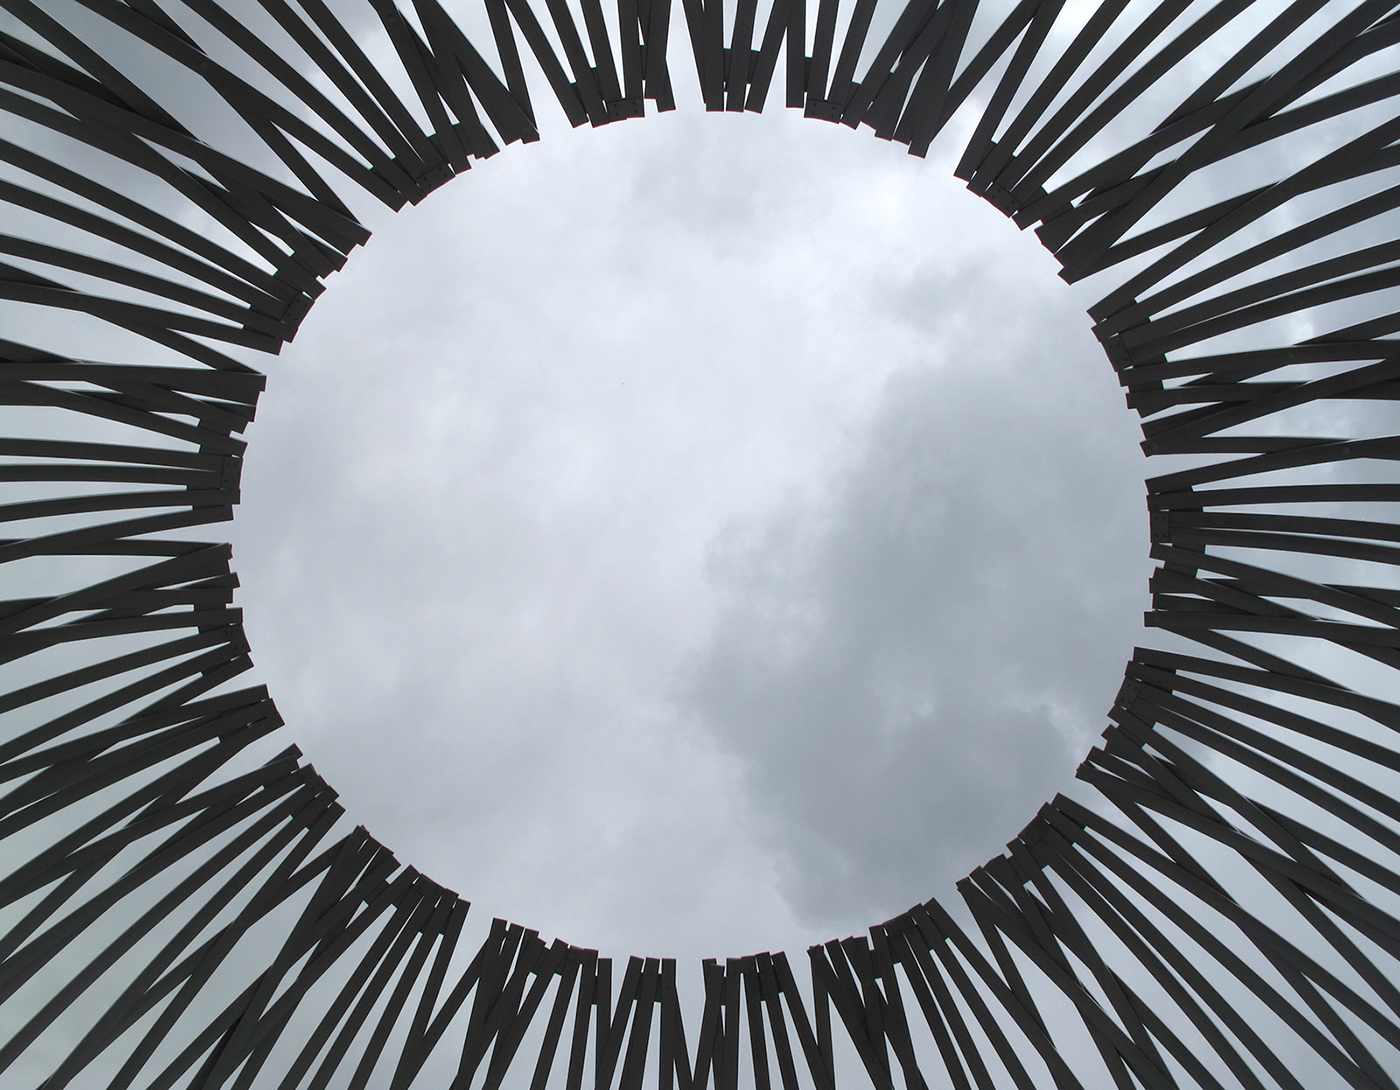 "'Havre"" from the inside, framing the clouds. Photo credit: Shelley Miller"